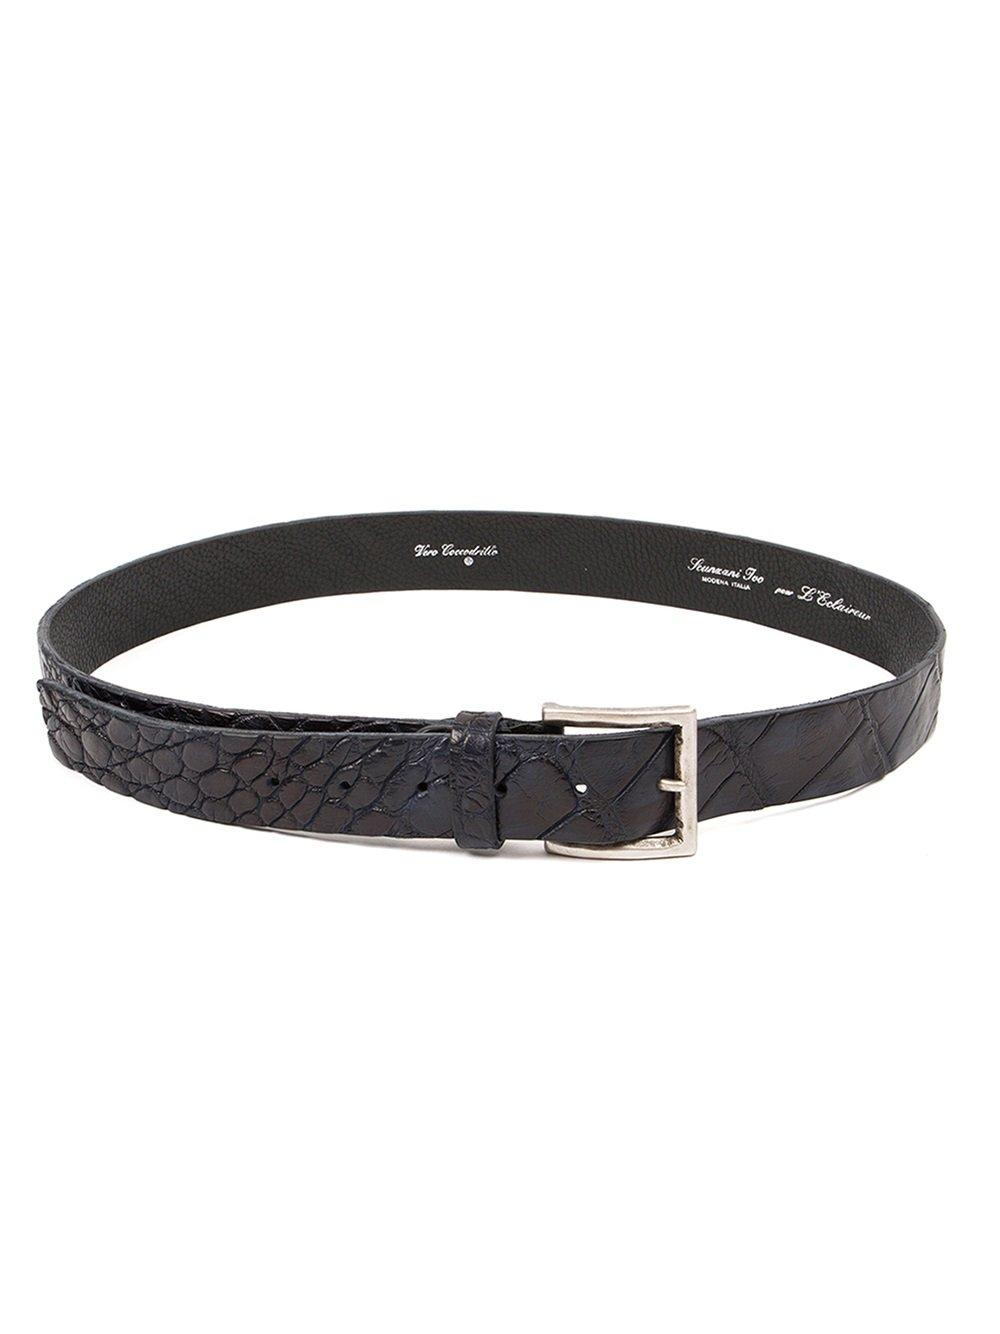 Ivo Scunzani Crocodile Leather Belt In Black